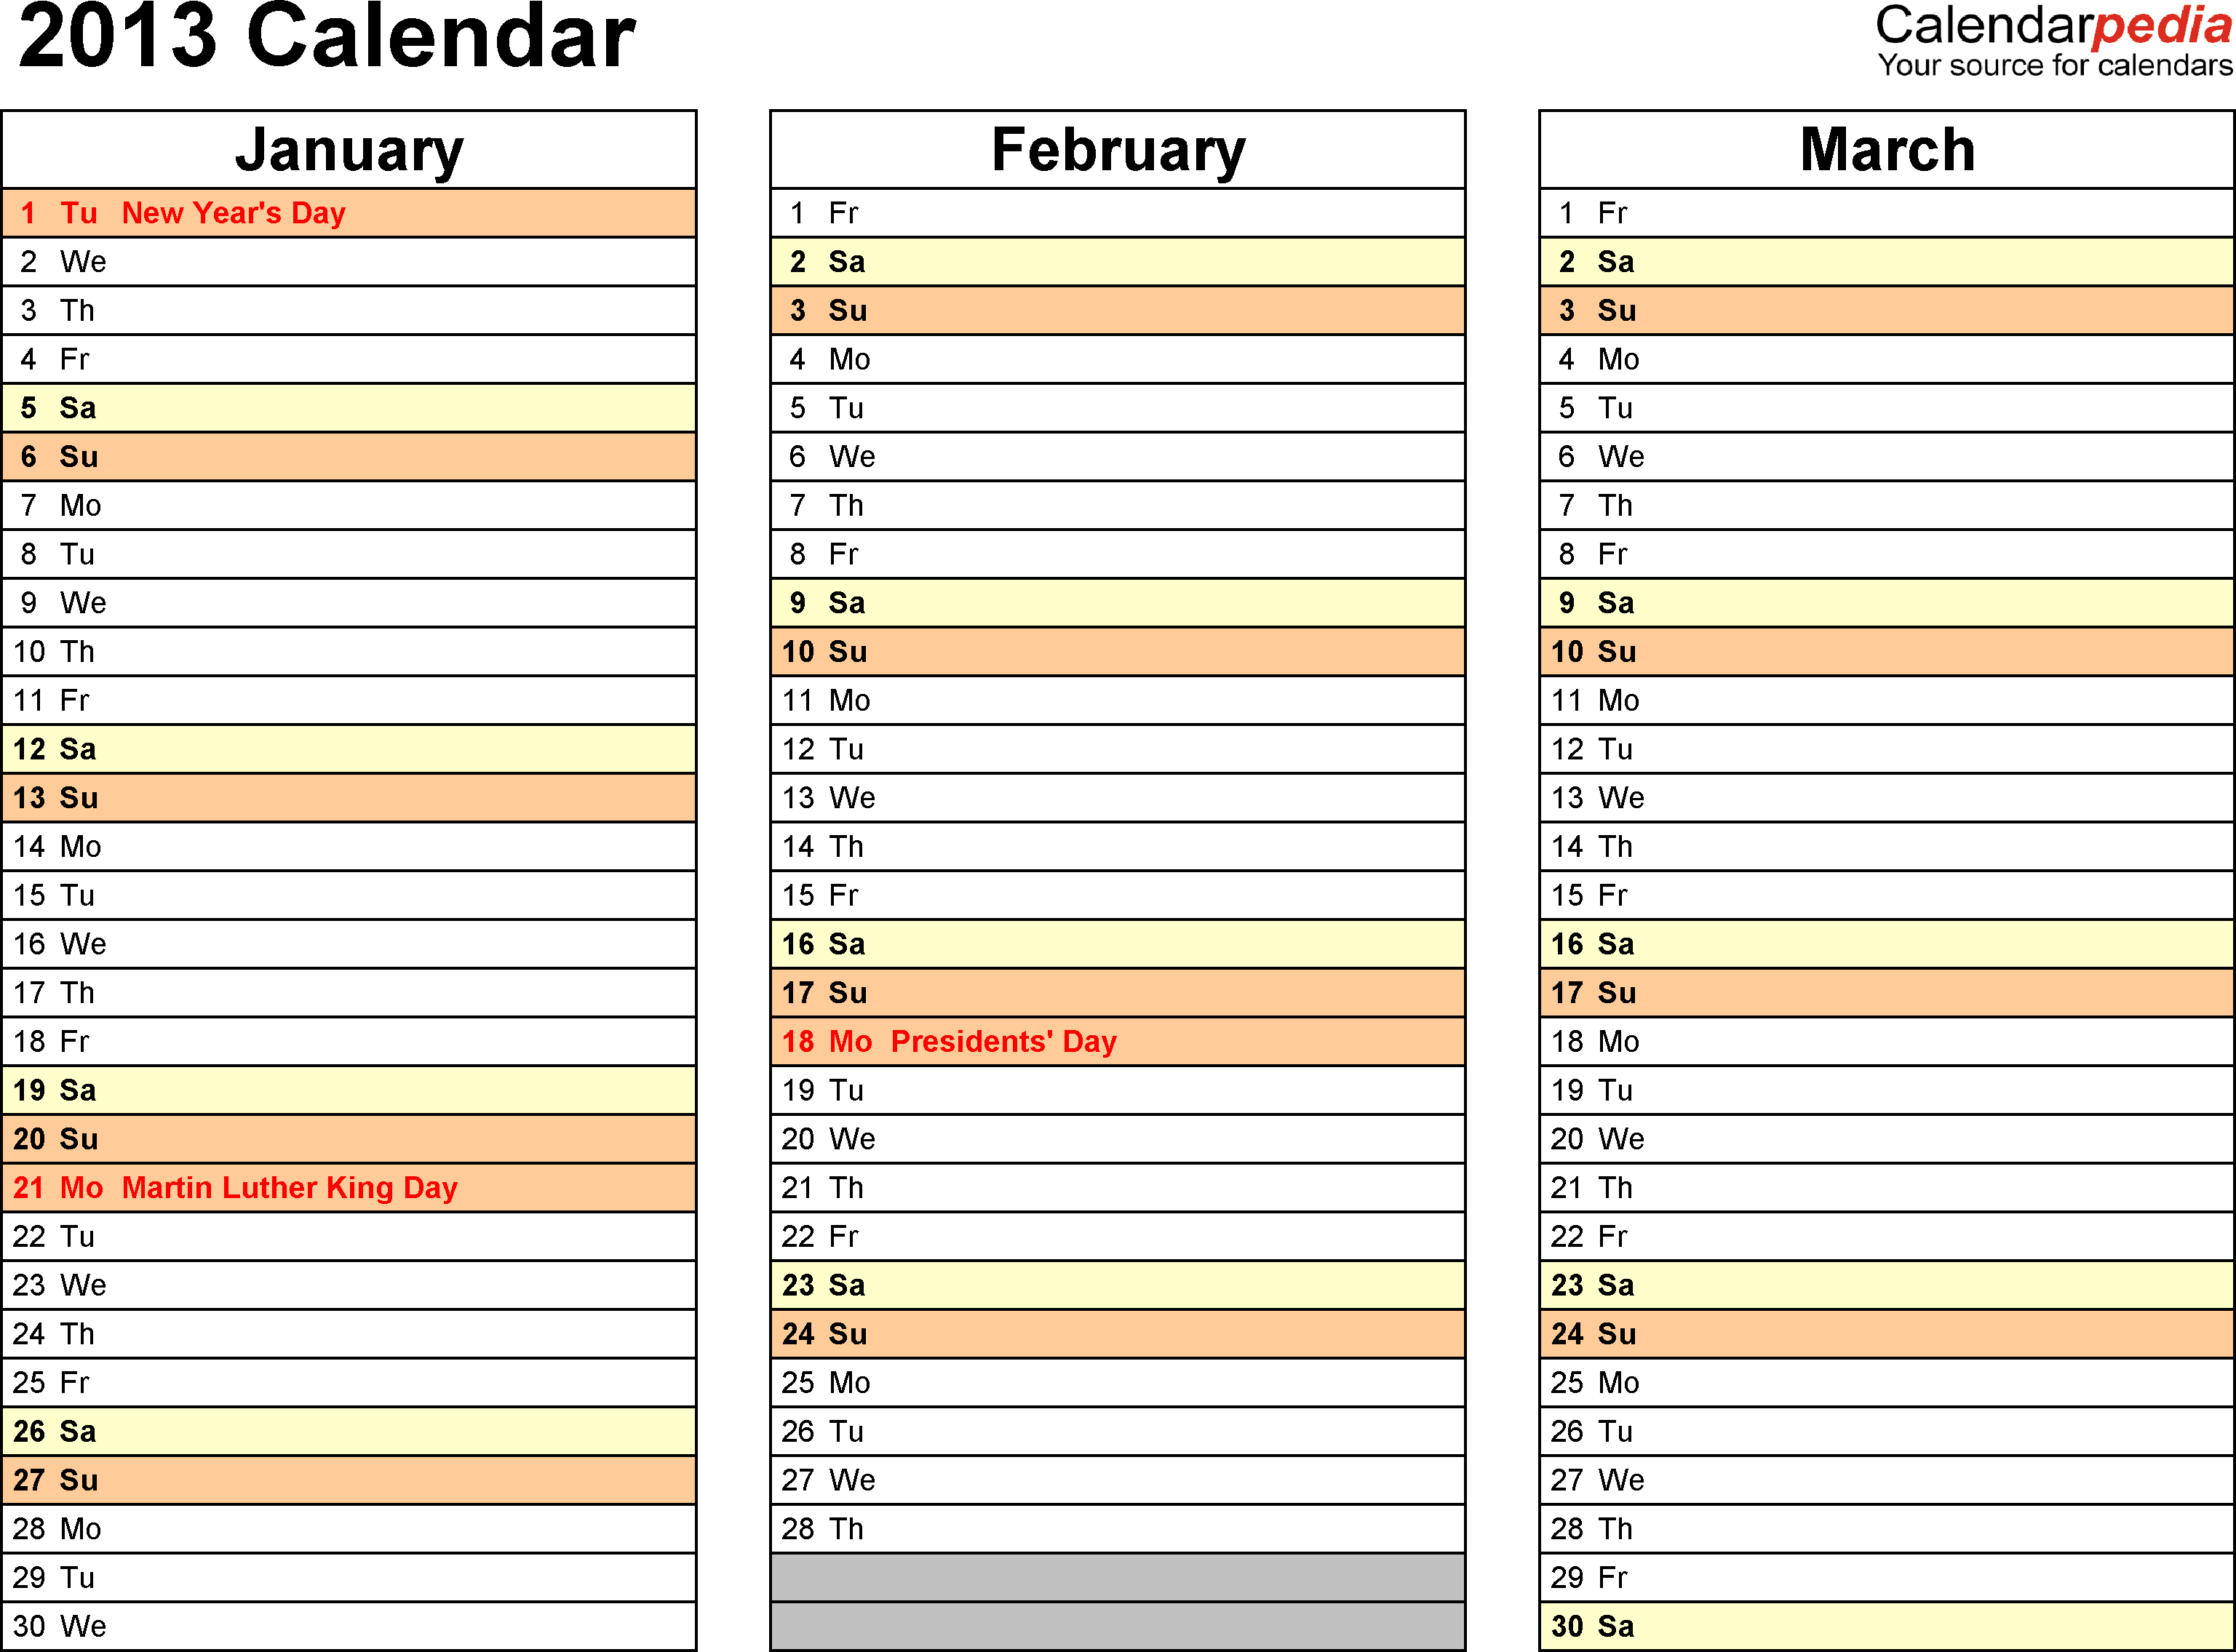 Download Excel template for 2013 calendar template 6: landscape orientation, 4 pages, months horizontally, days vertically